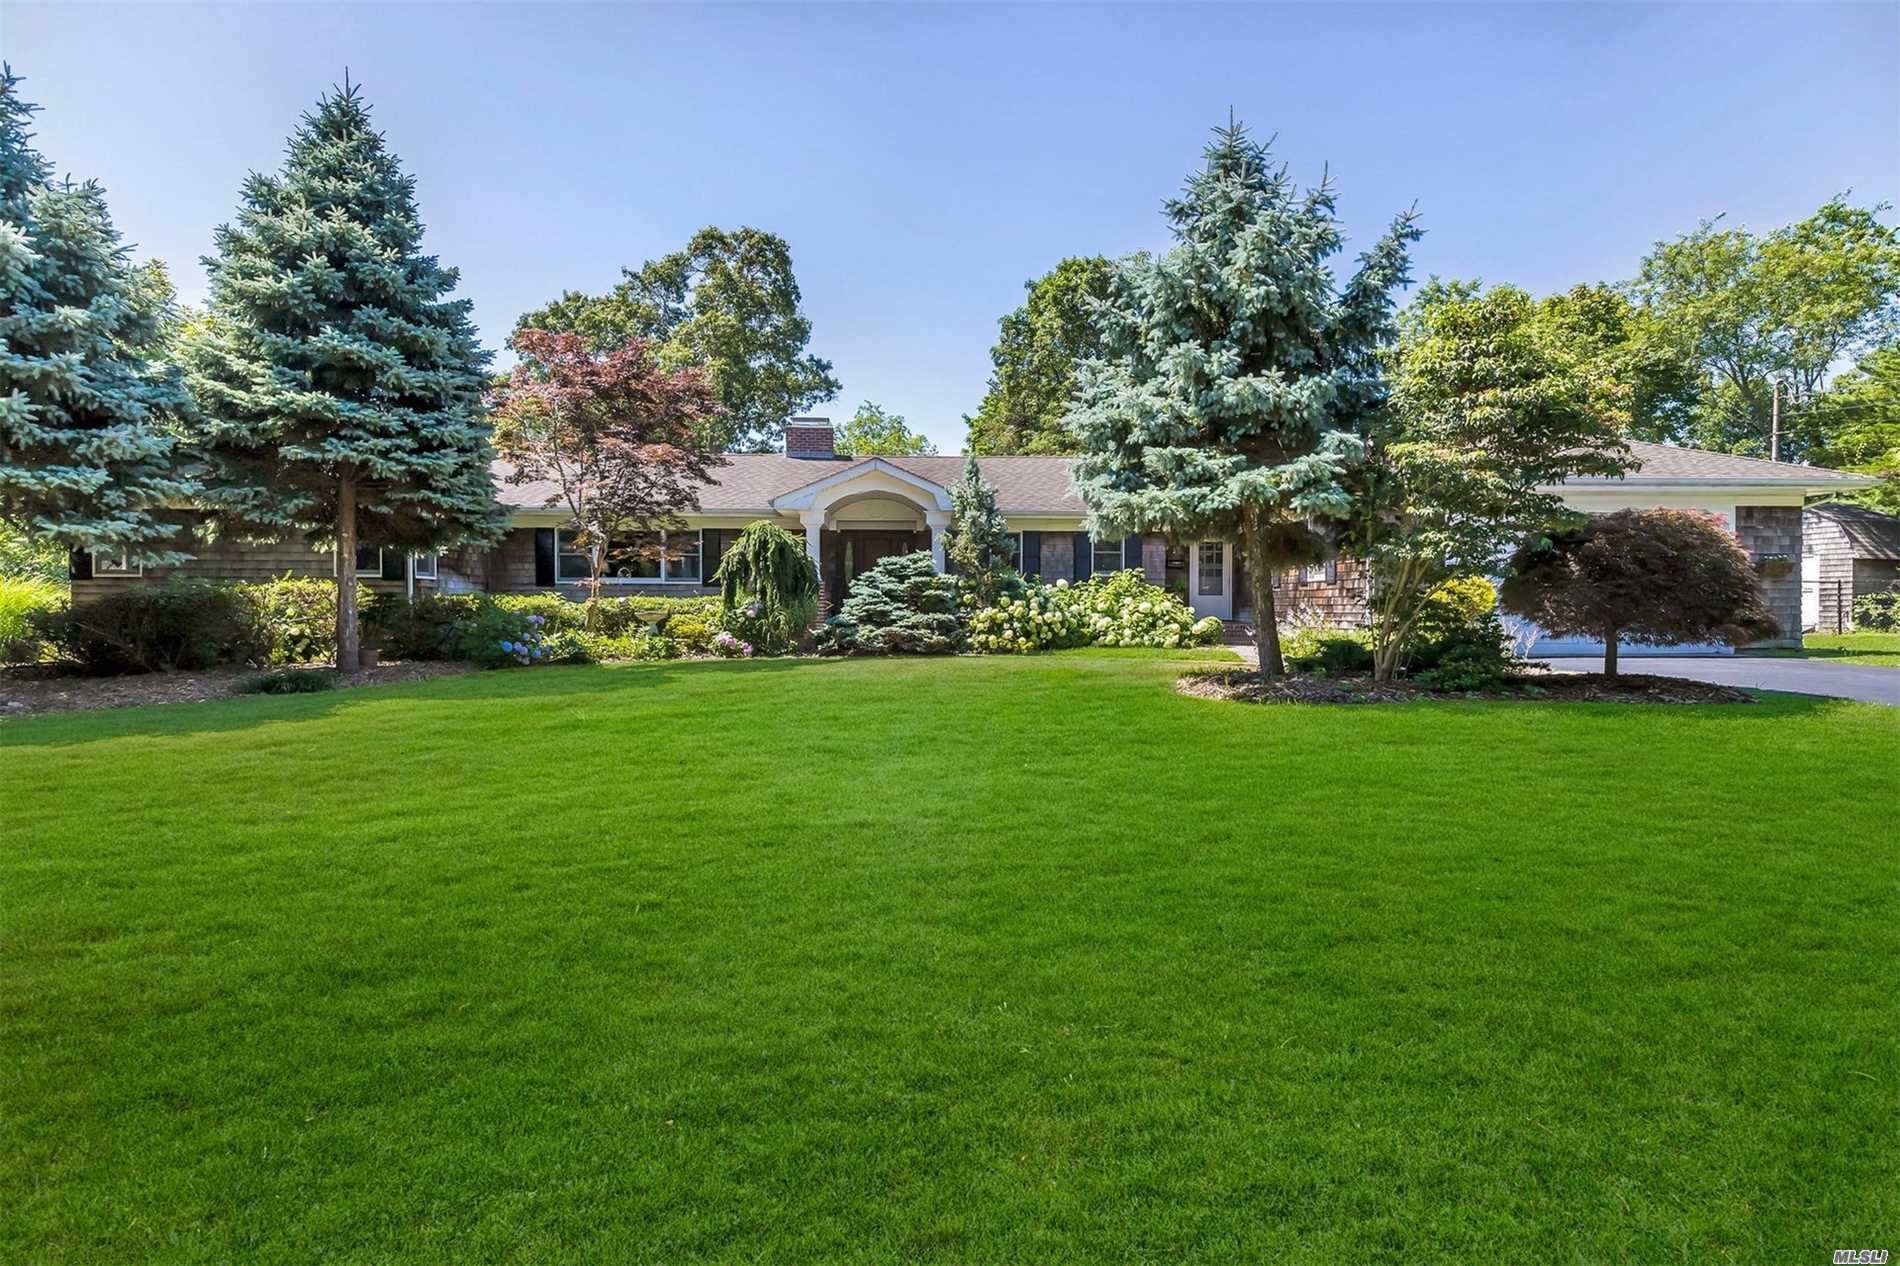 Thoughtfully Designed Sprawling Ranch On A Private Road. Cedar Shingled Exterior & Arched Portico Welcomes You. Slate Floor Foyer W/2 Gorgeous Exposed Brick Walls; The 2nd In The Dining Room W/Wood Burning Fireplace. Soaring Ceilings, Dark Stained Beams & Granite Hearth Accent The Great Room. Enjoy The Adjacent, Glass Enclosed, Billiard Room. Tremendous Chef's Kitchen, Den & Laundry Room.The East Wing Accommodates 4 Bedrooms & 2 Full Bathrooms. One Acre Of Mature Landscaping. One Of A Kind!